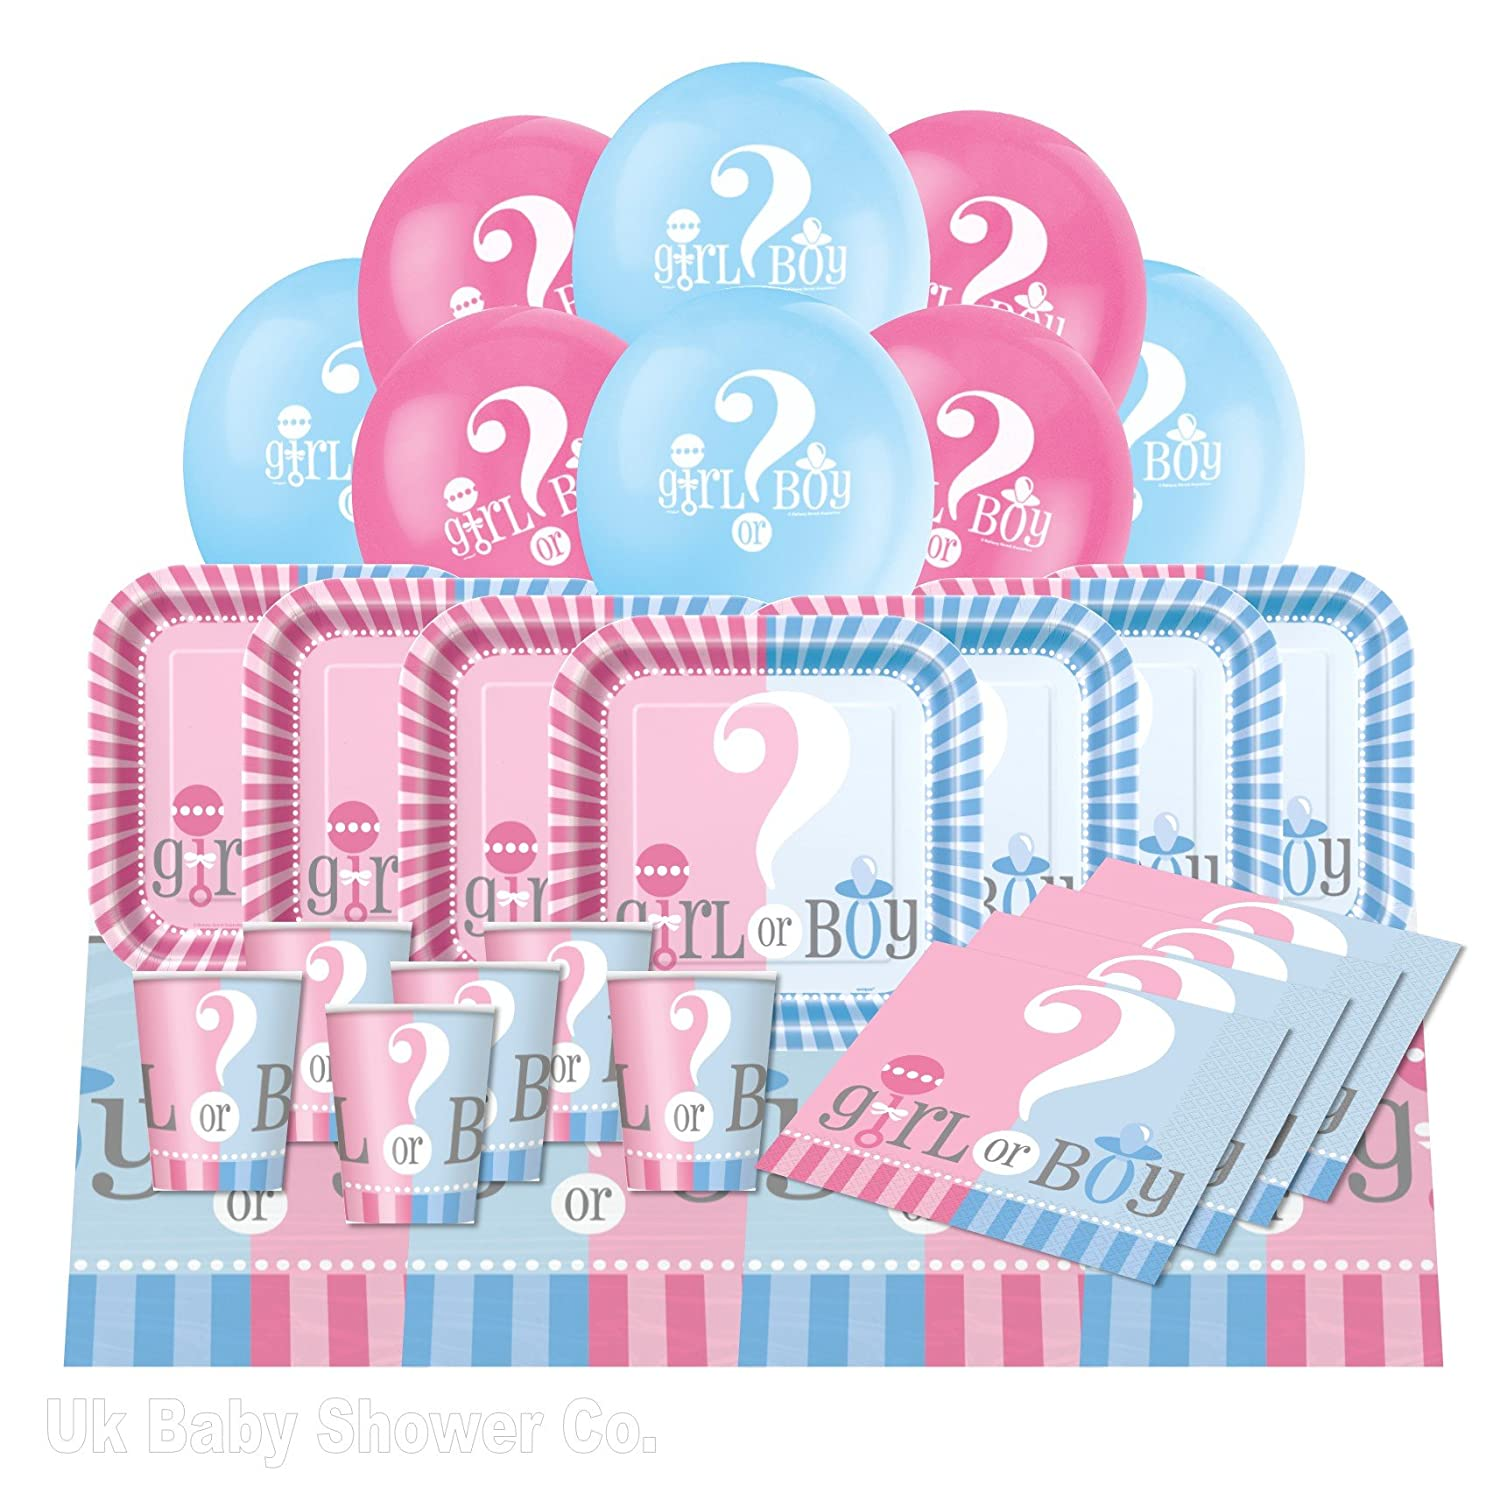 Baby Shower Essential Party Pack from Gender Reveal Range (16 Guest) Uk Baby Shower Co 93315